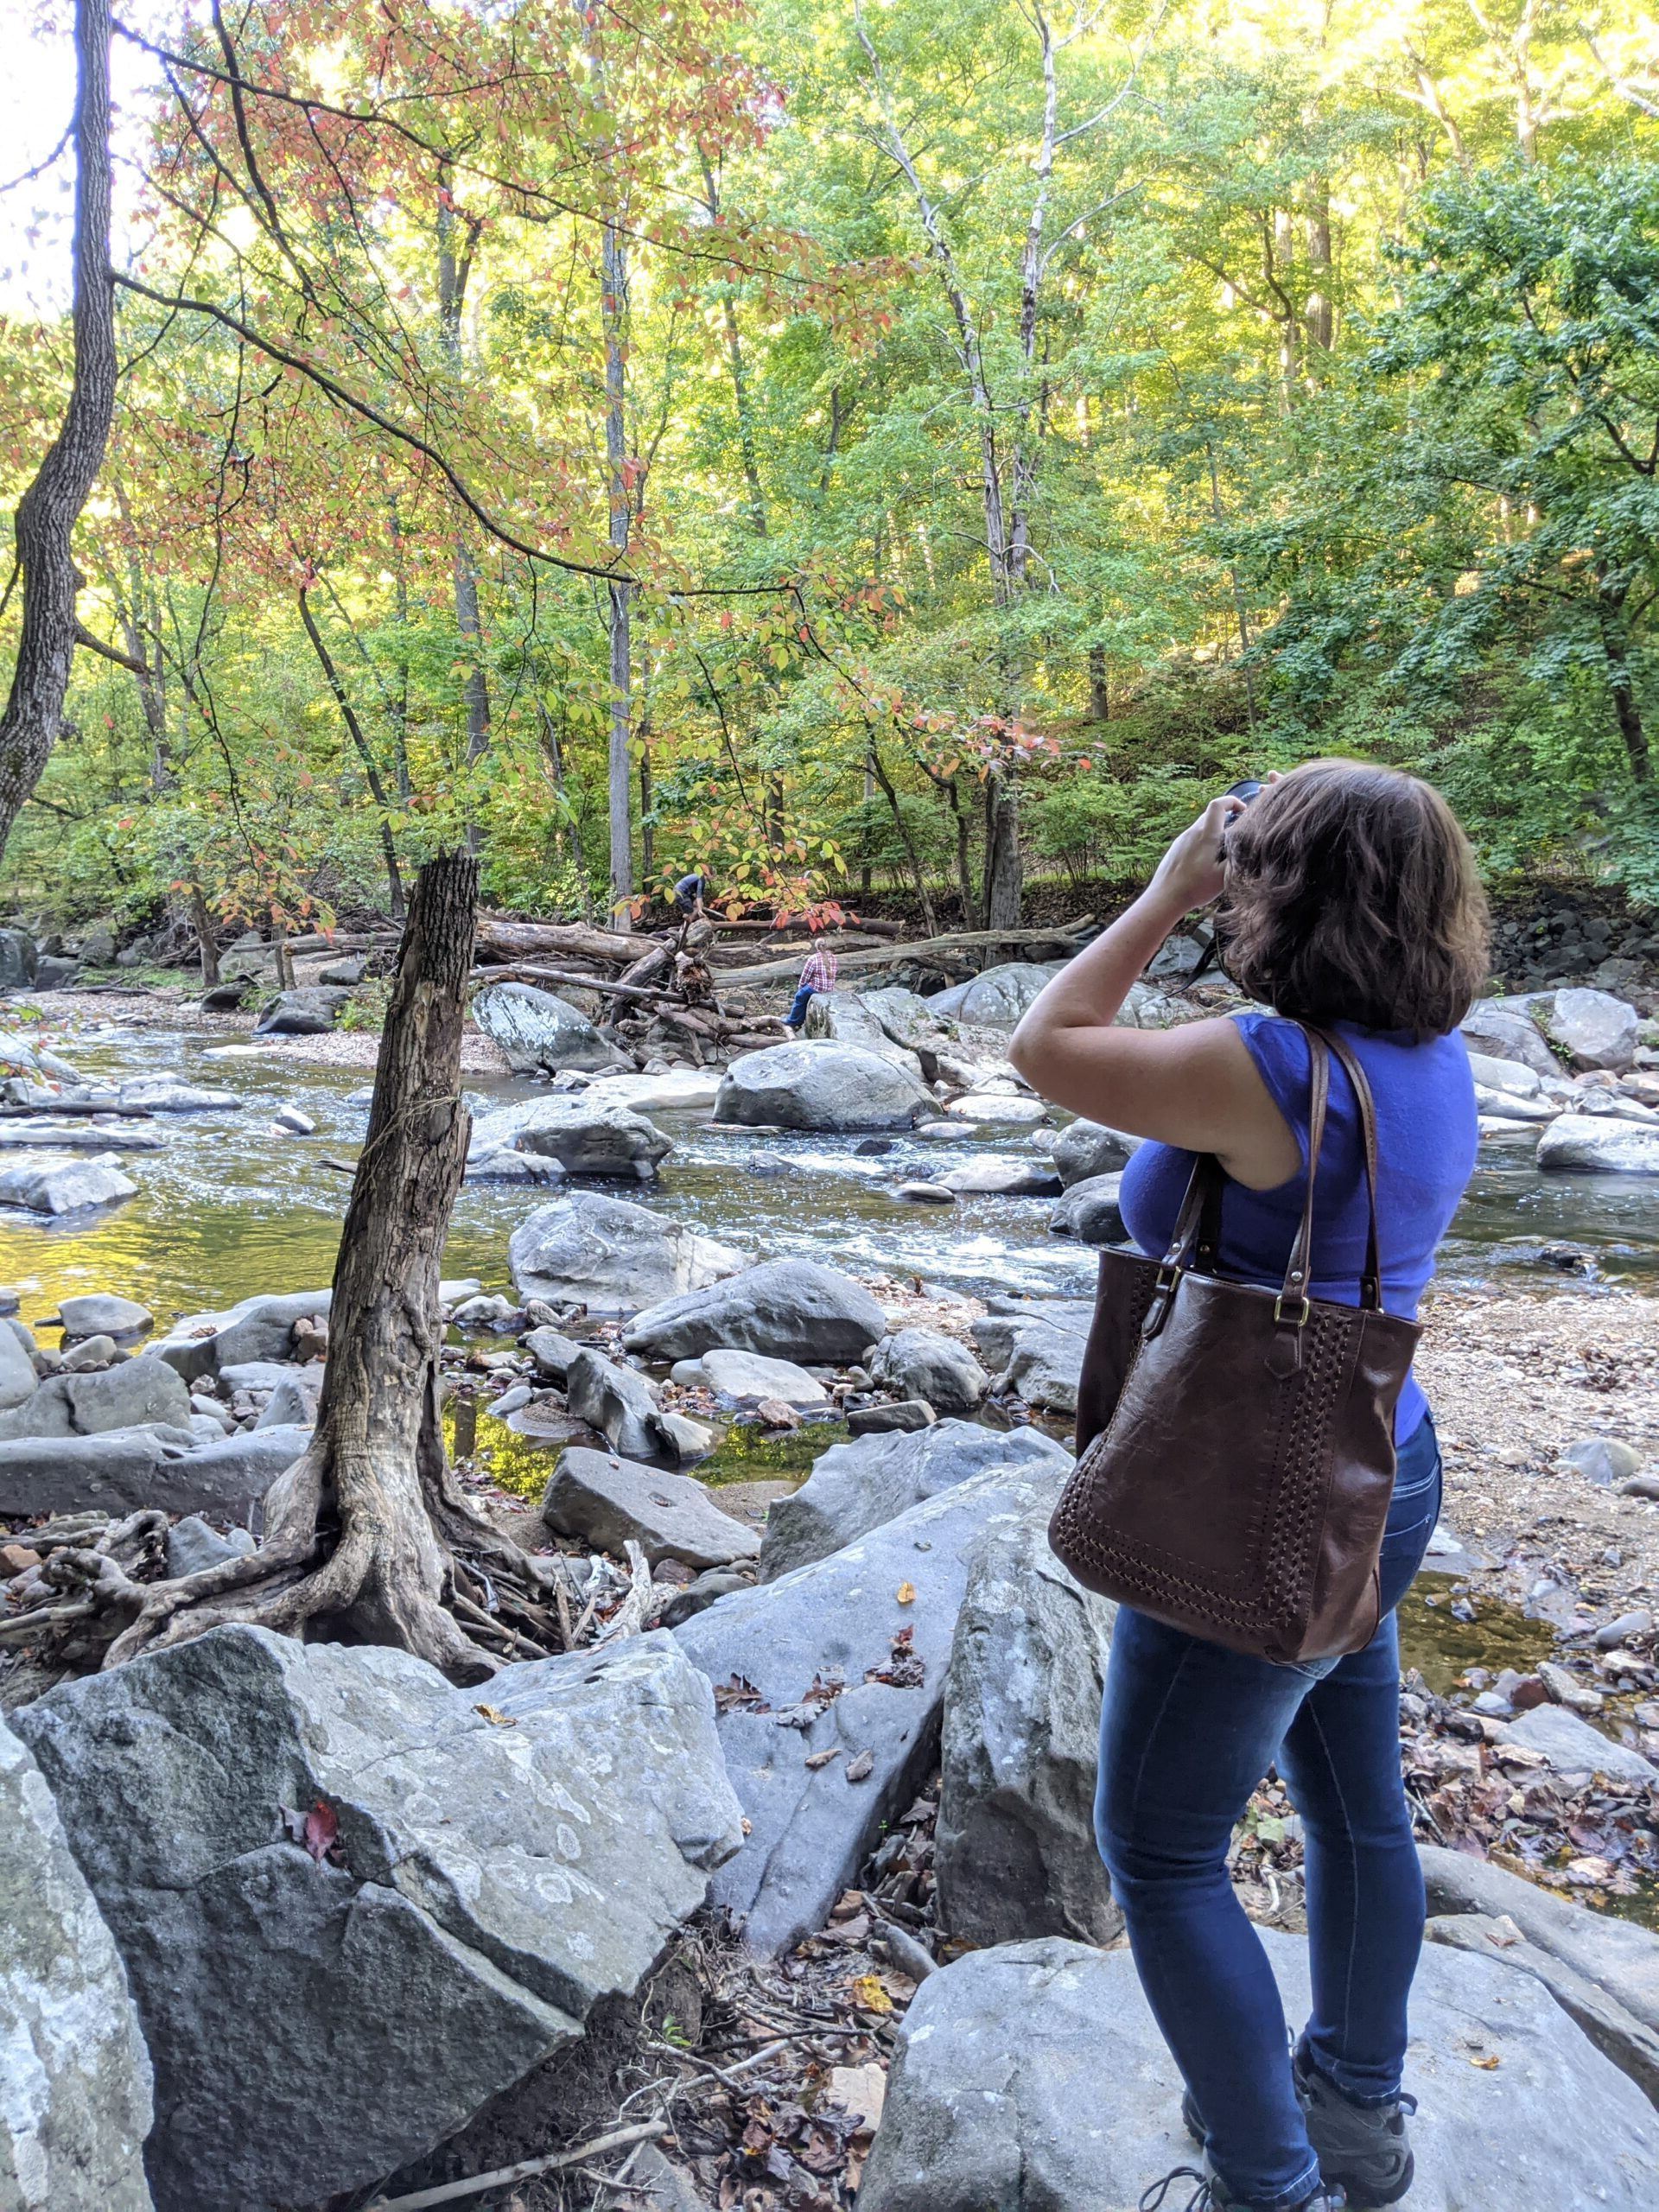 Gina Phipps taking photo of trees and stream